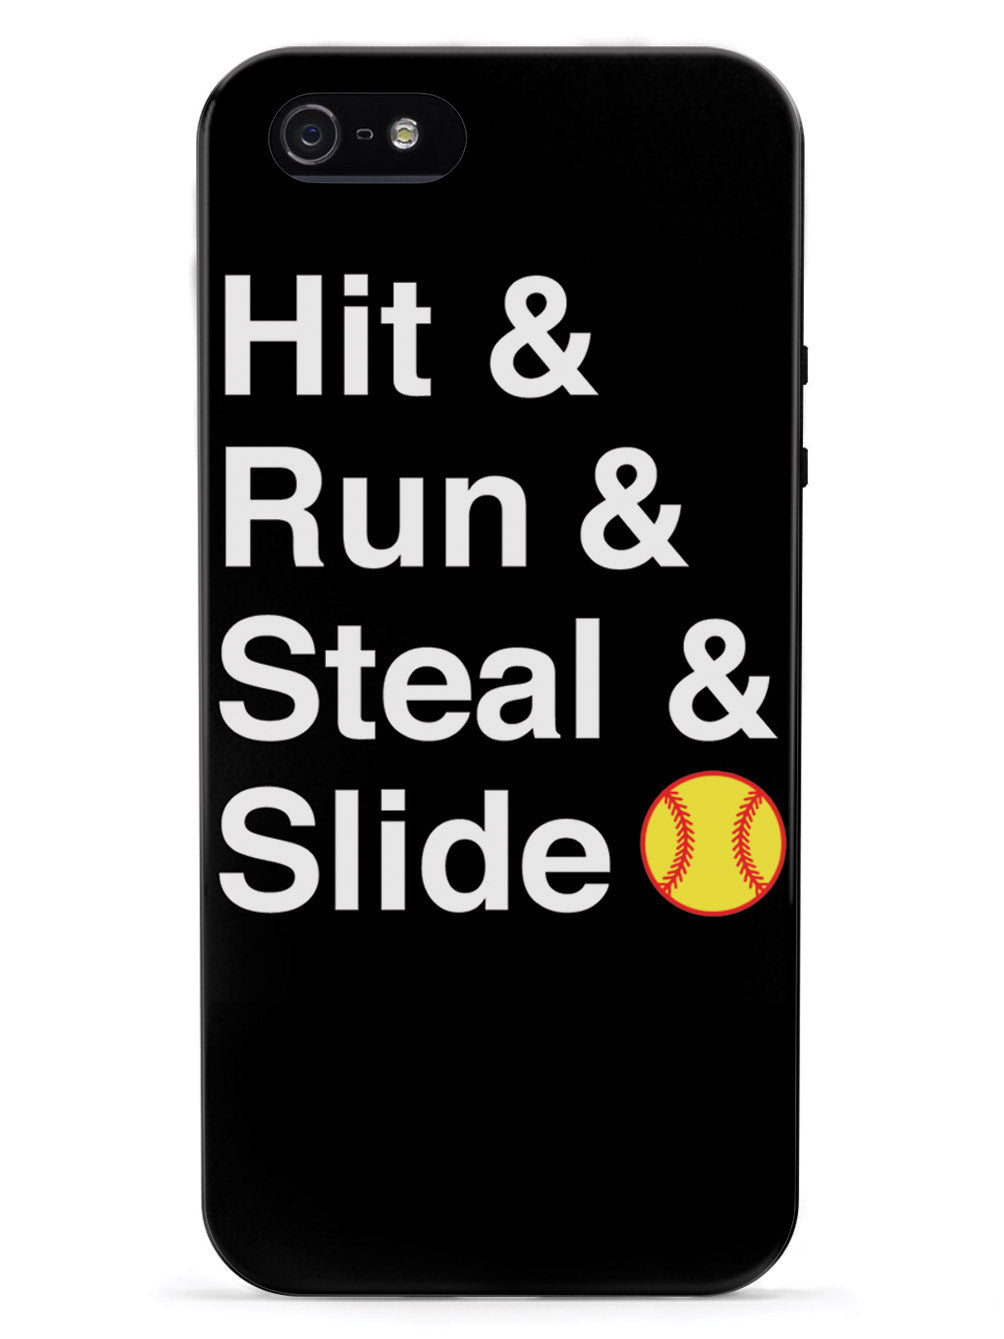 Hit & Run & Steal & Slide - Softball Case